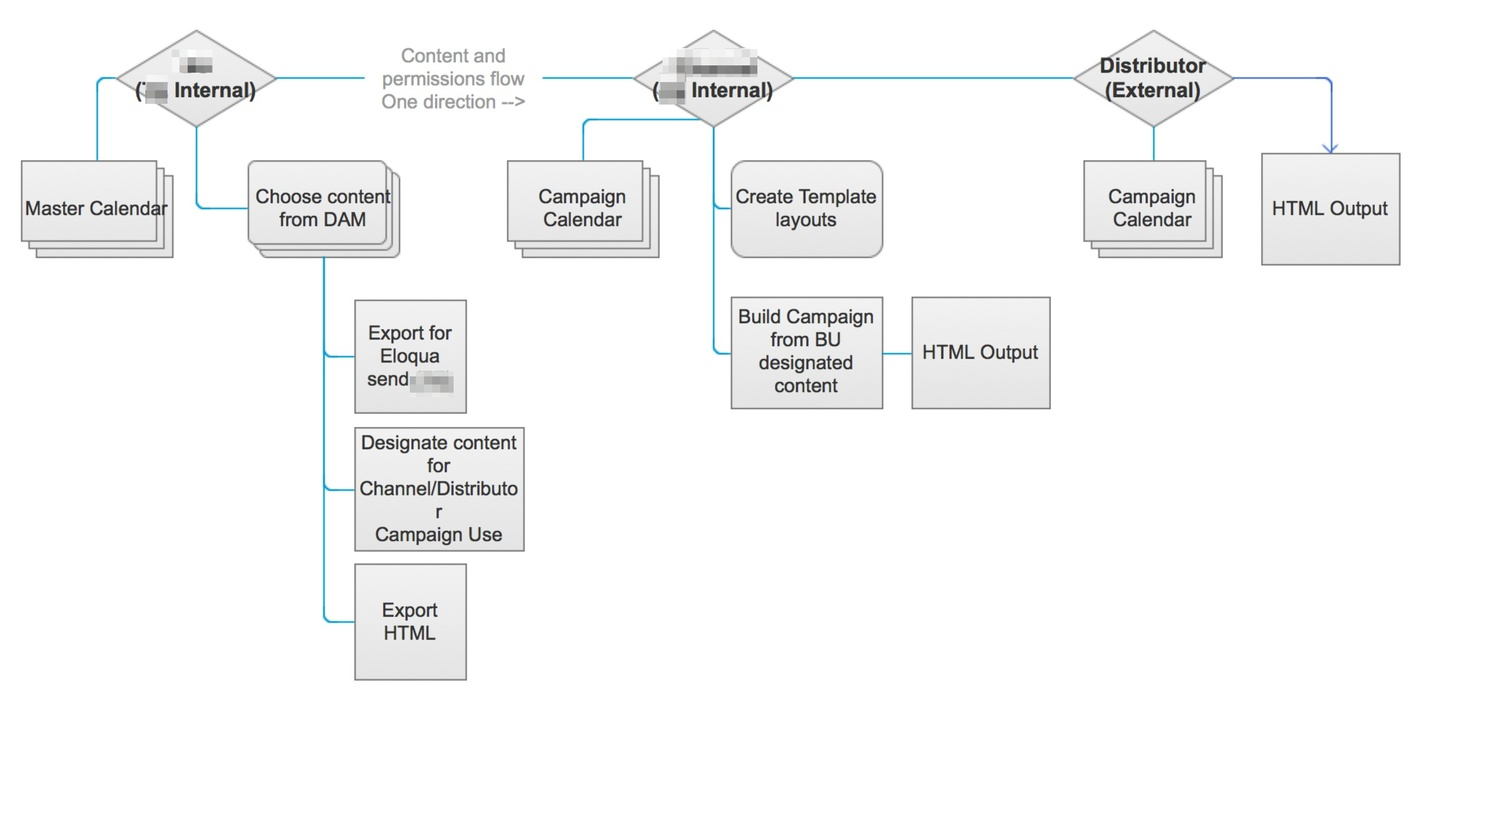 Content and permission flow chart